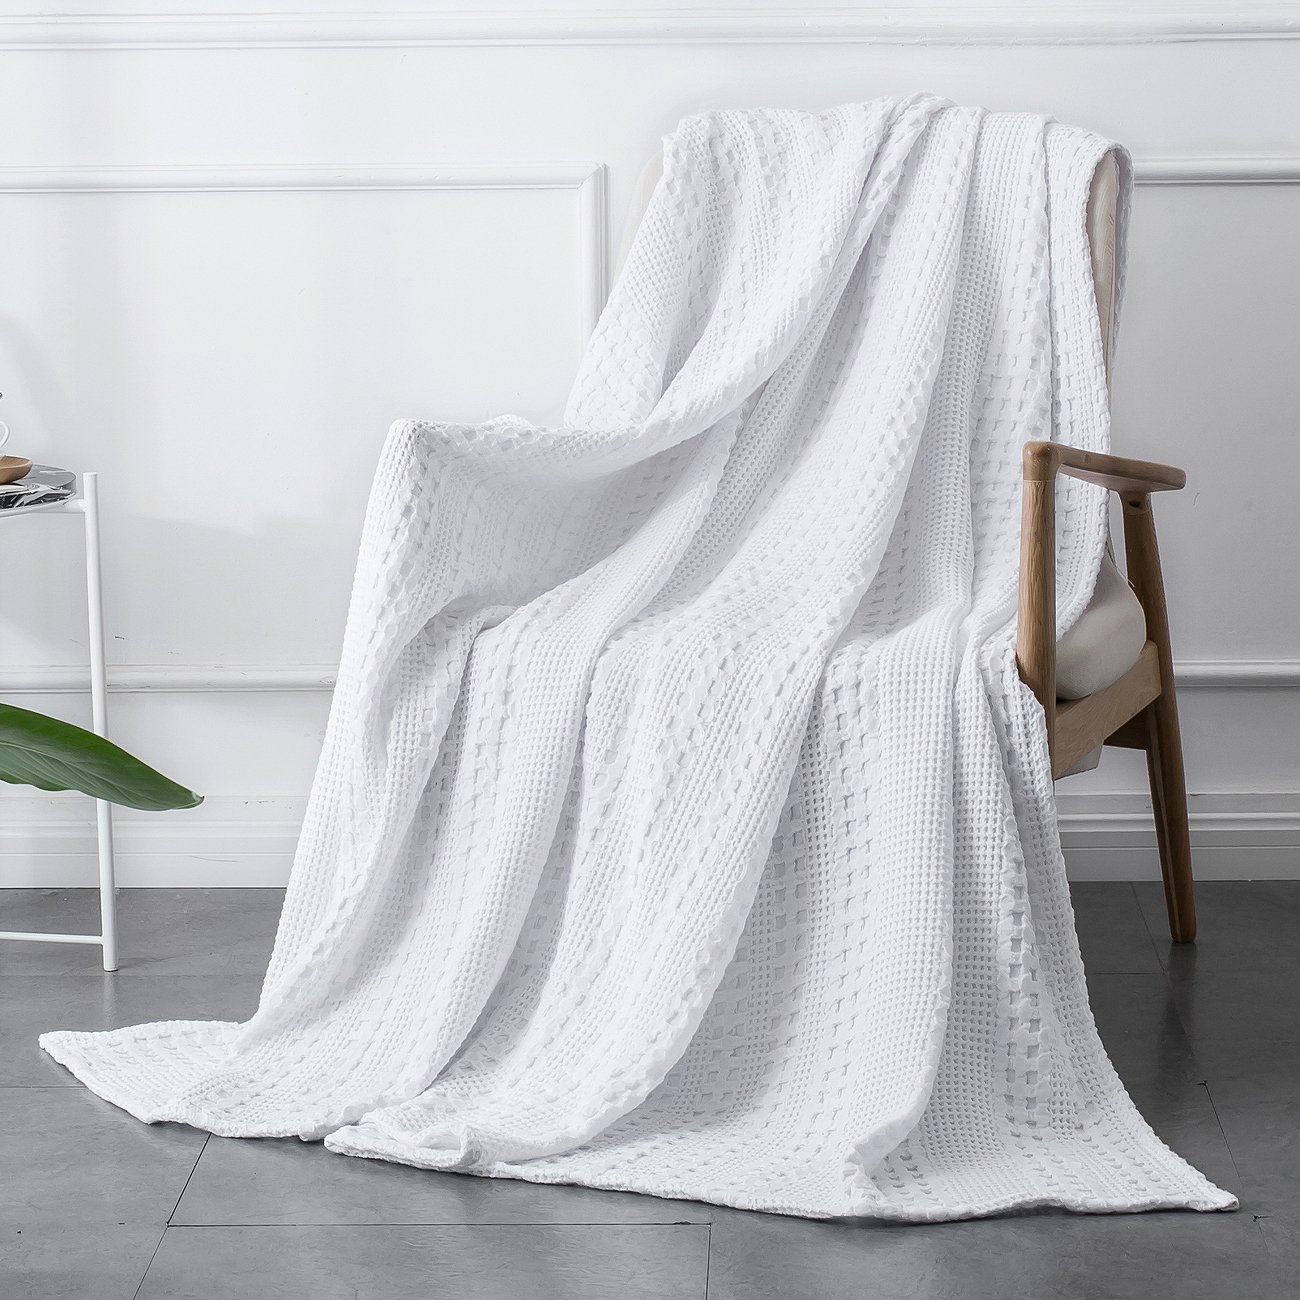 PHF Cotton Waffle Weave Blanket Home Decorations for All Season Cozy Soft Comfort King Size White